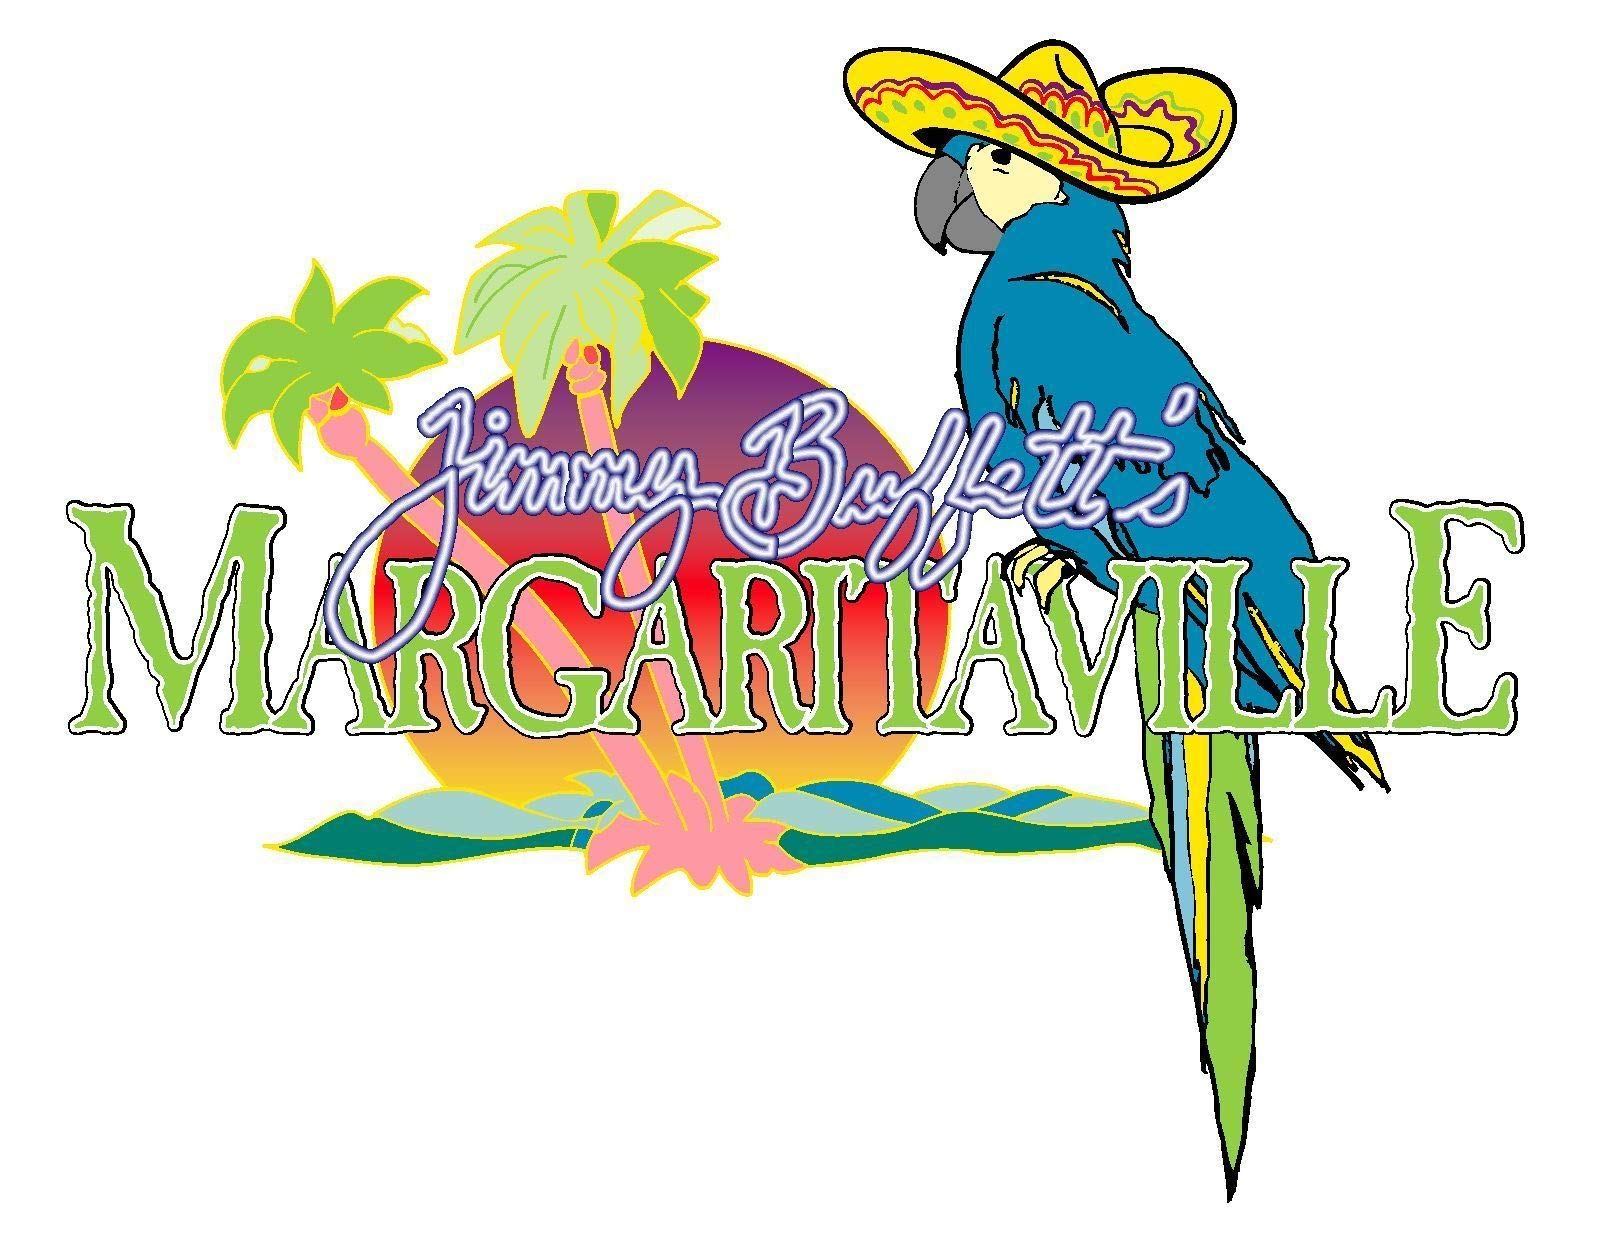 Workmas Sticker Margaritaville Jimmy Buffetts Sombrero Weather Resist for Windows Car Truck Cell Phone Bumpers Laptop Wall, 18''